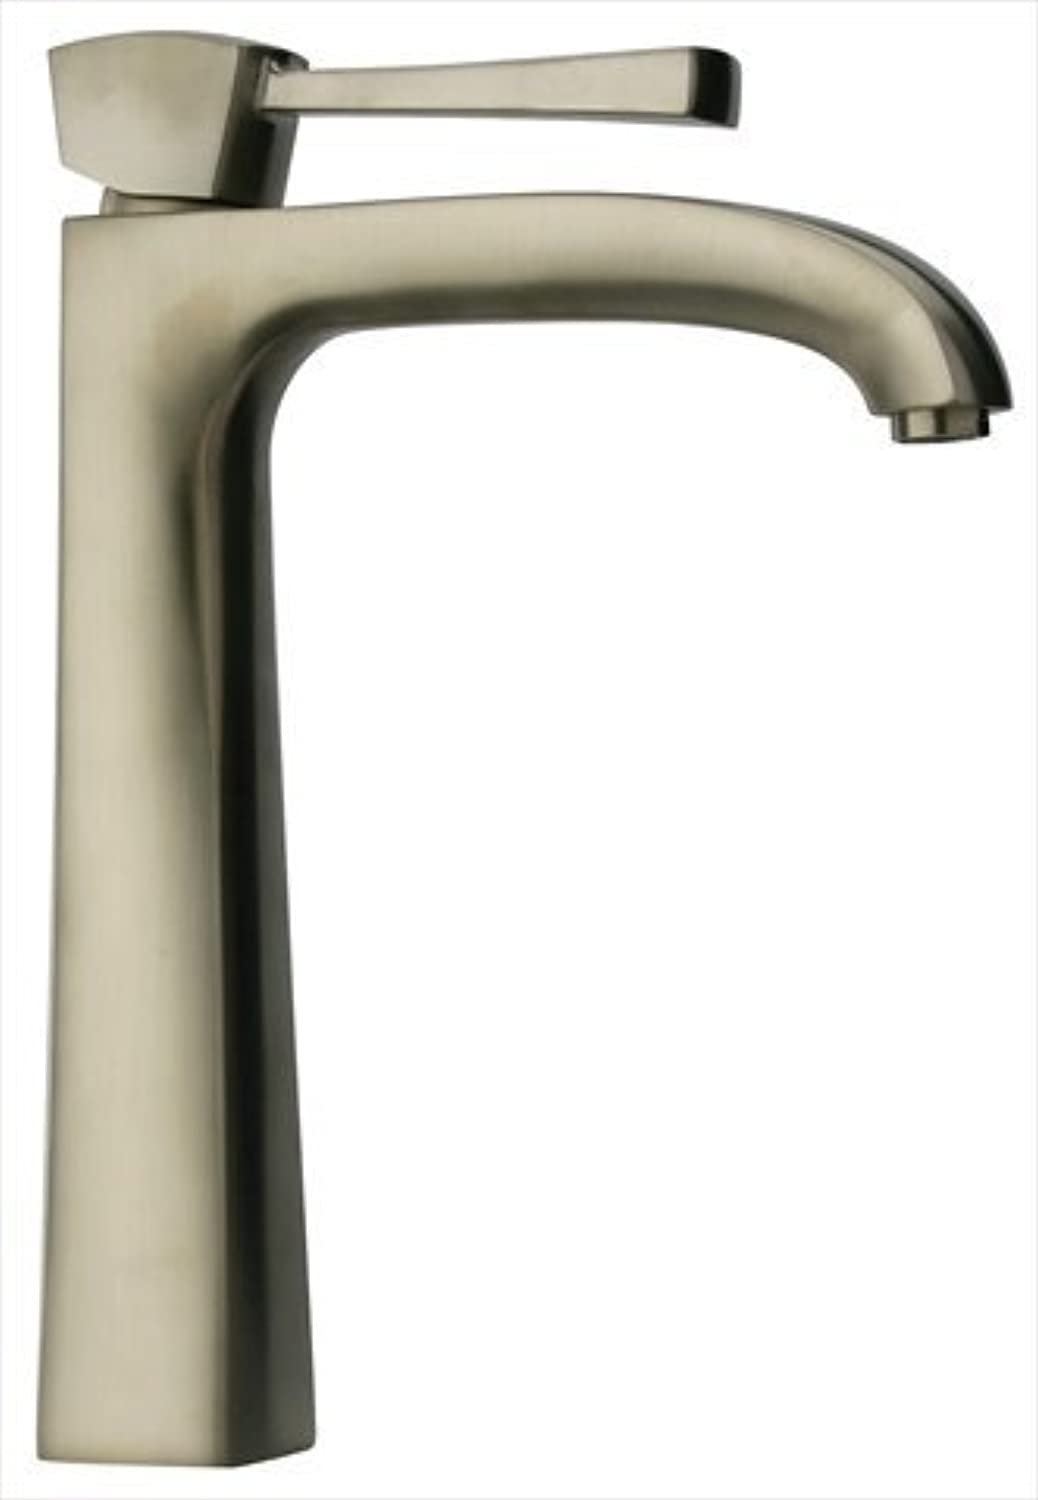 La Toscana 89PW211L Lady Tall Single Post Mount Lavatory Faucet with Pop-Up Drain, Brushed Nickel by La Toscana